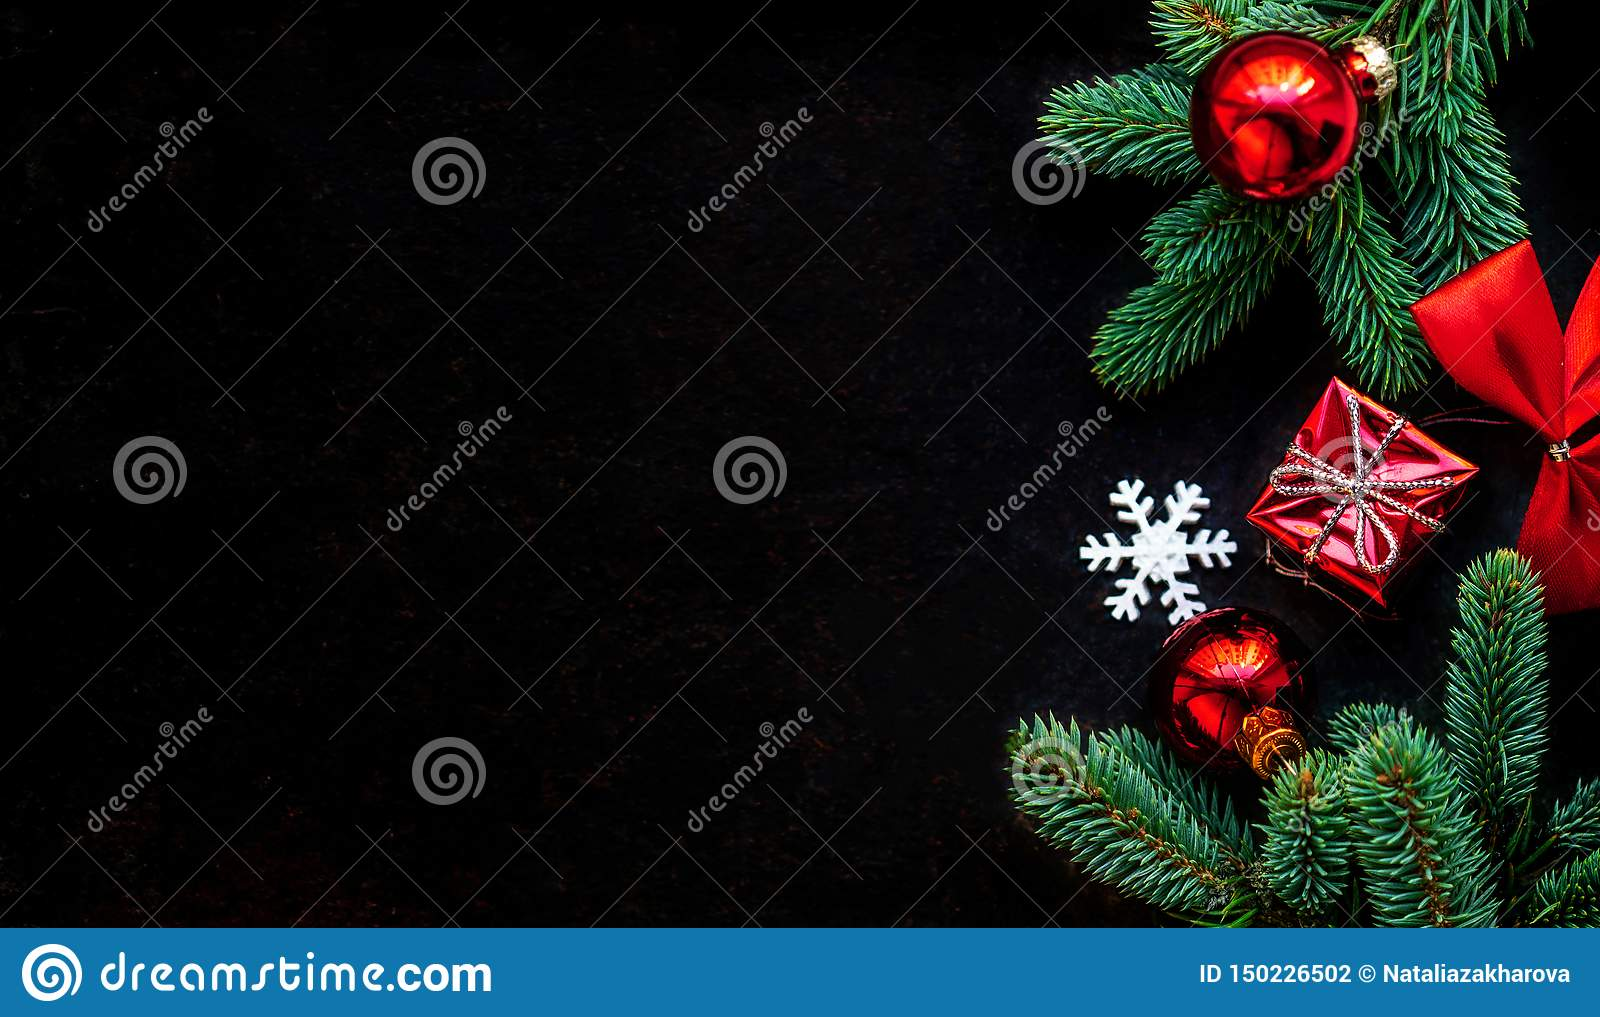 Christmas Decoration On Dark Black Background Flat Lay Christmas Wallpaper With Copy Space Stock Photo Image Of Slate Decoration 150226502